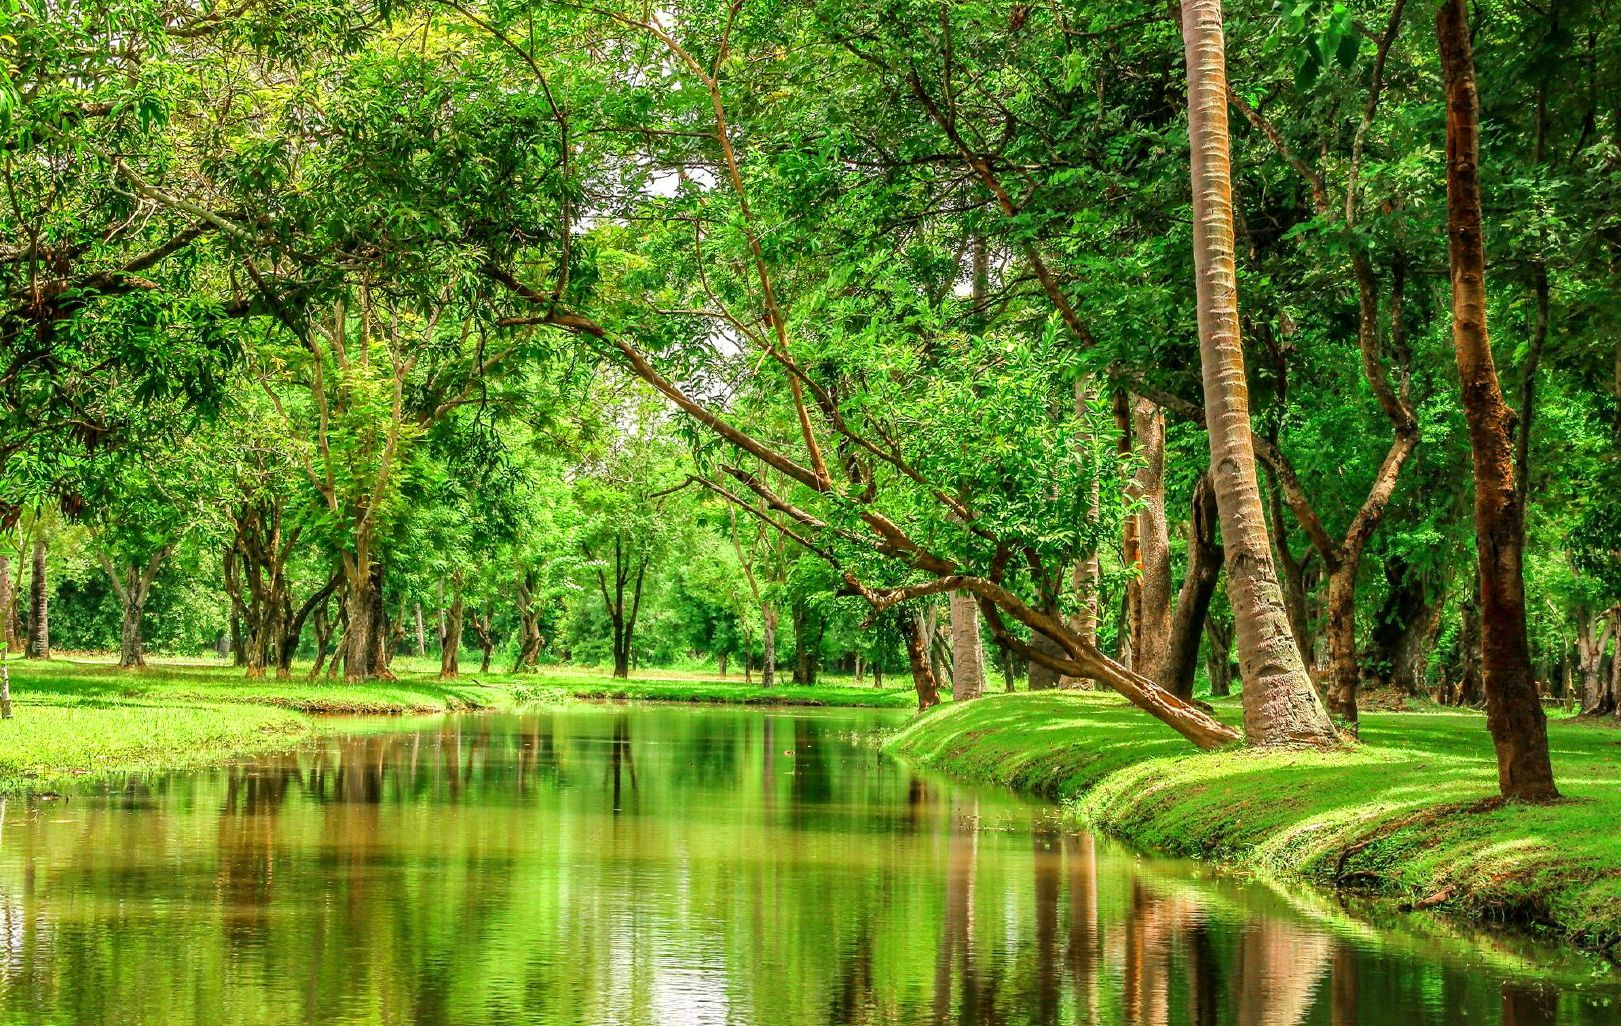 Mindblowing Hd Widescreen Nature Wallpapers Ginva Nature Images Hd Nature Nature Images